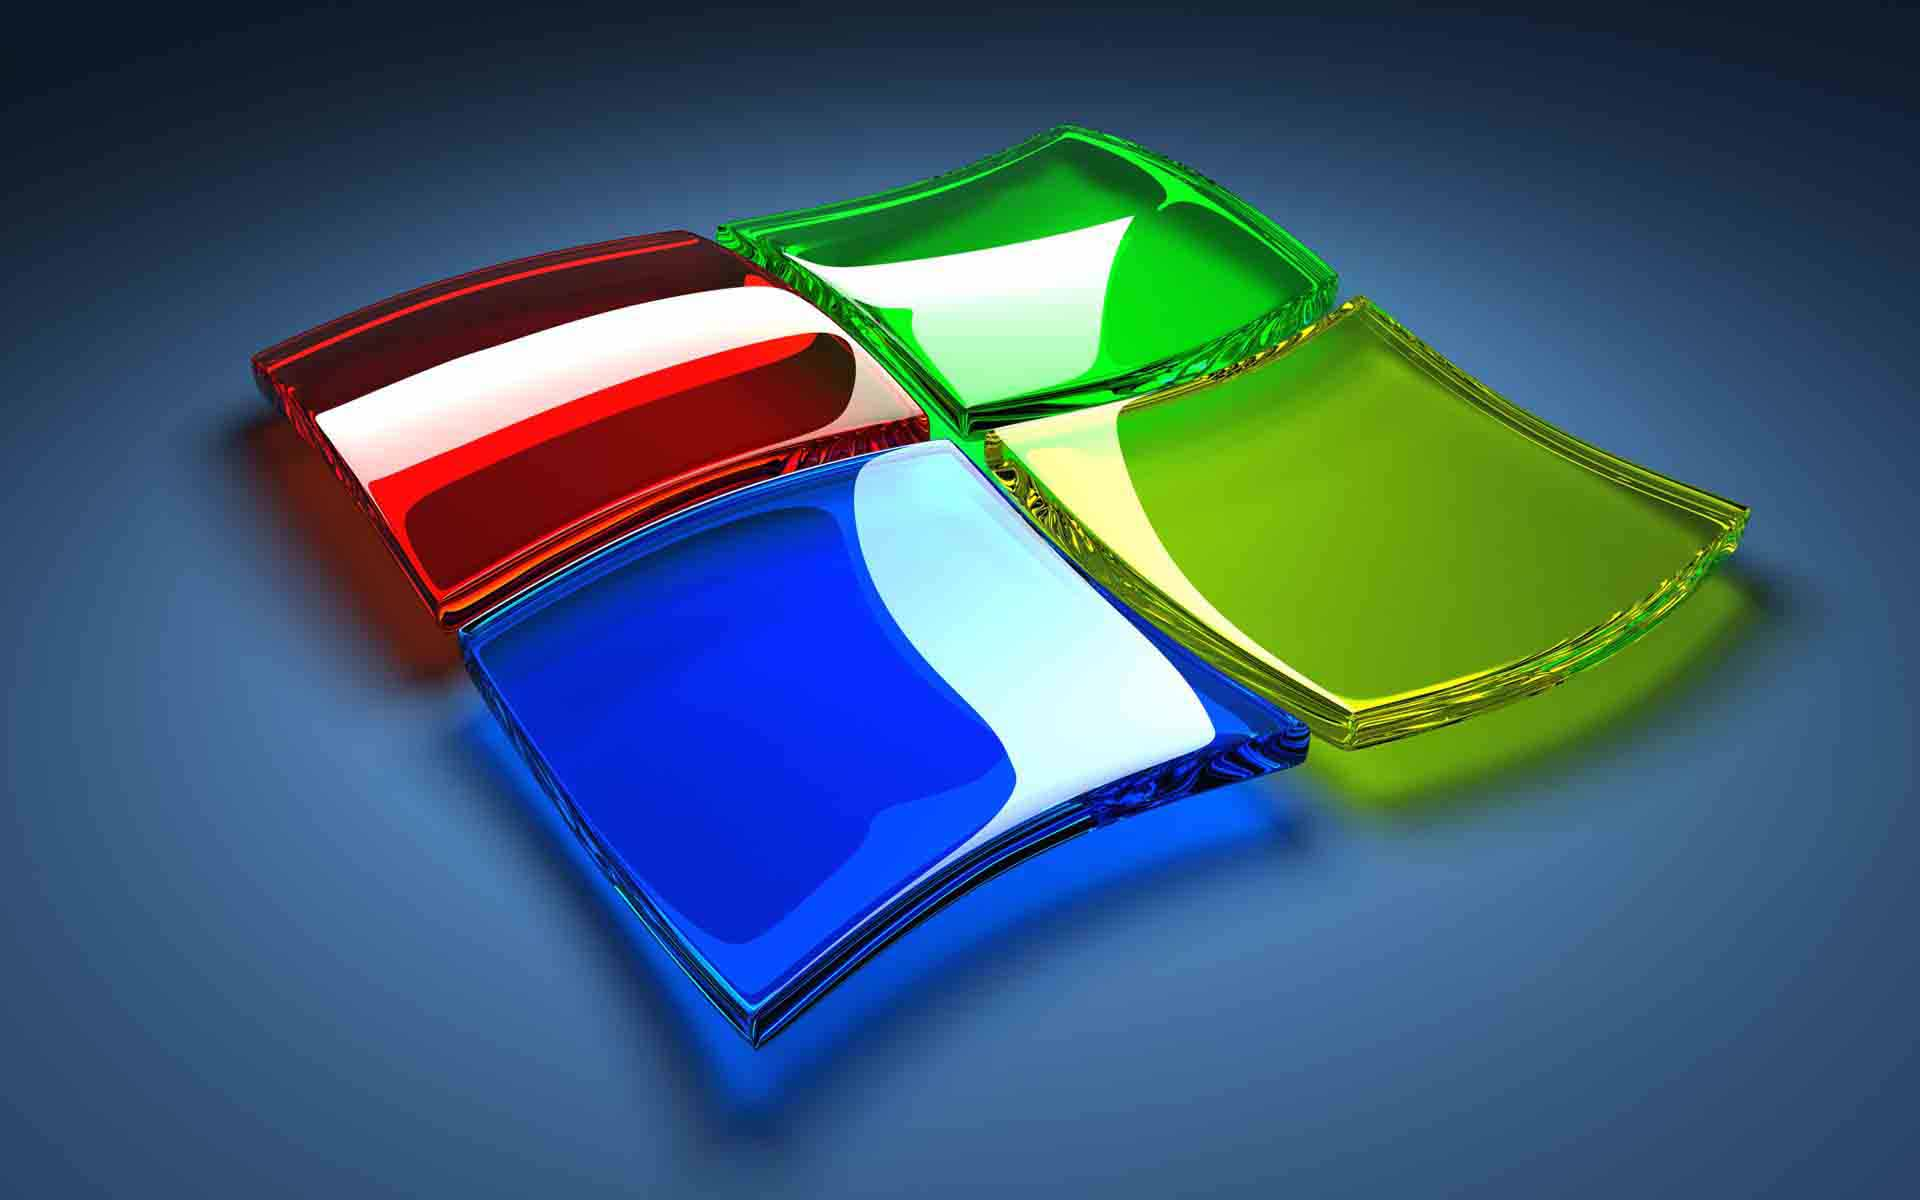 Cool Windows Wallpaper